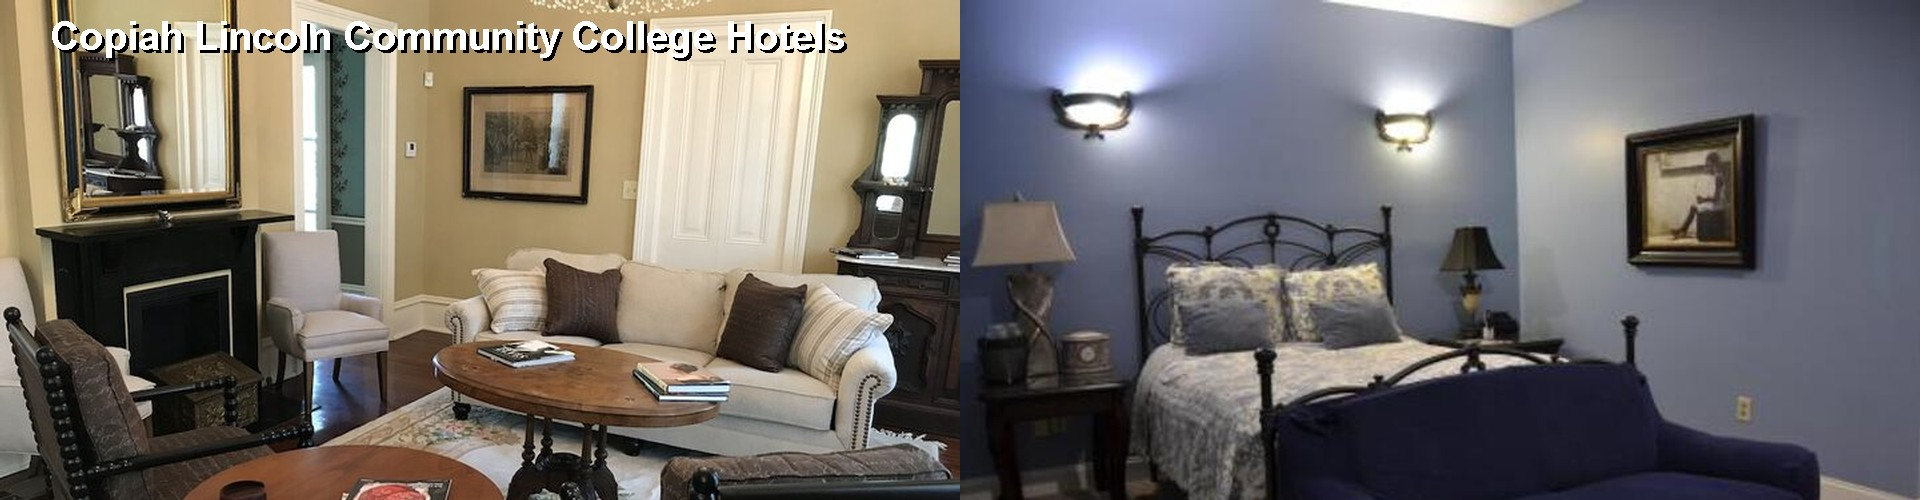 Hotels Near Cadillac Mi No Reservation Costs Great Rates 24 7 Customer Service Booking Fees Secure Free Cancellation